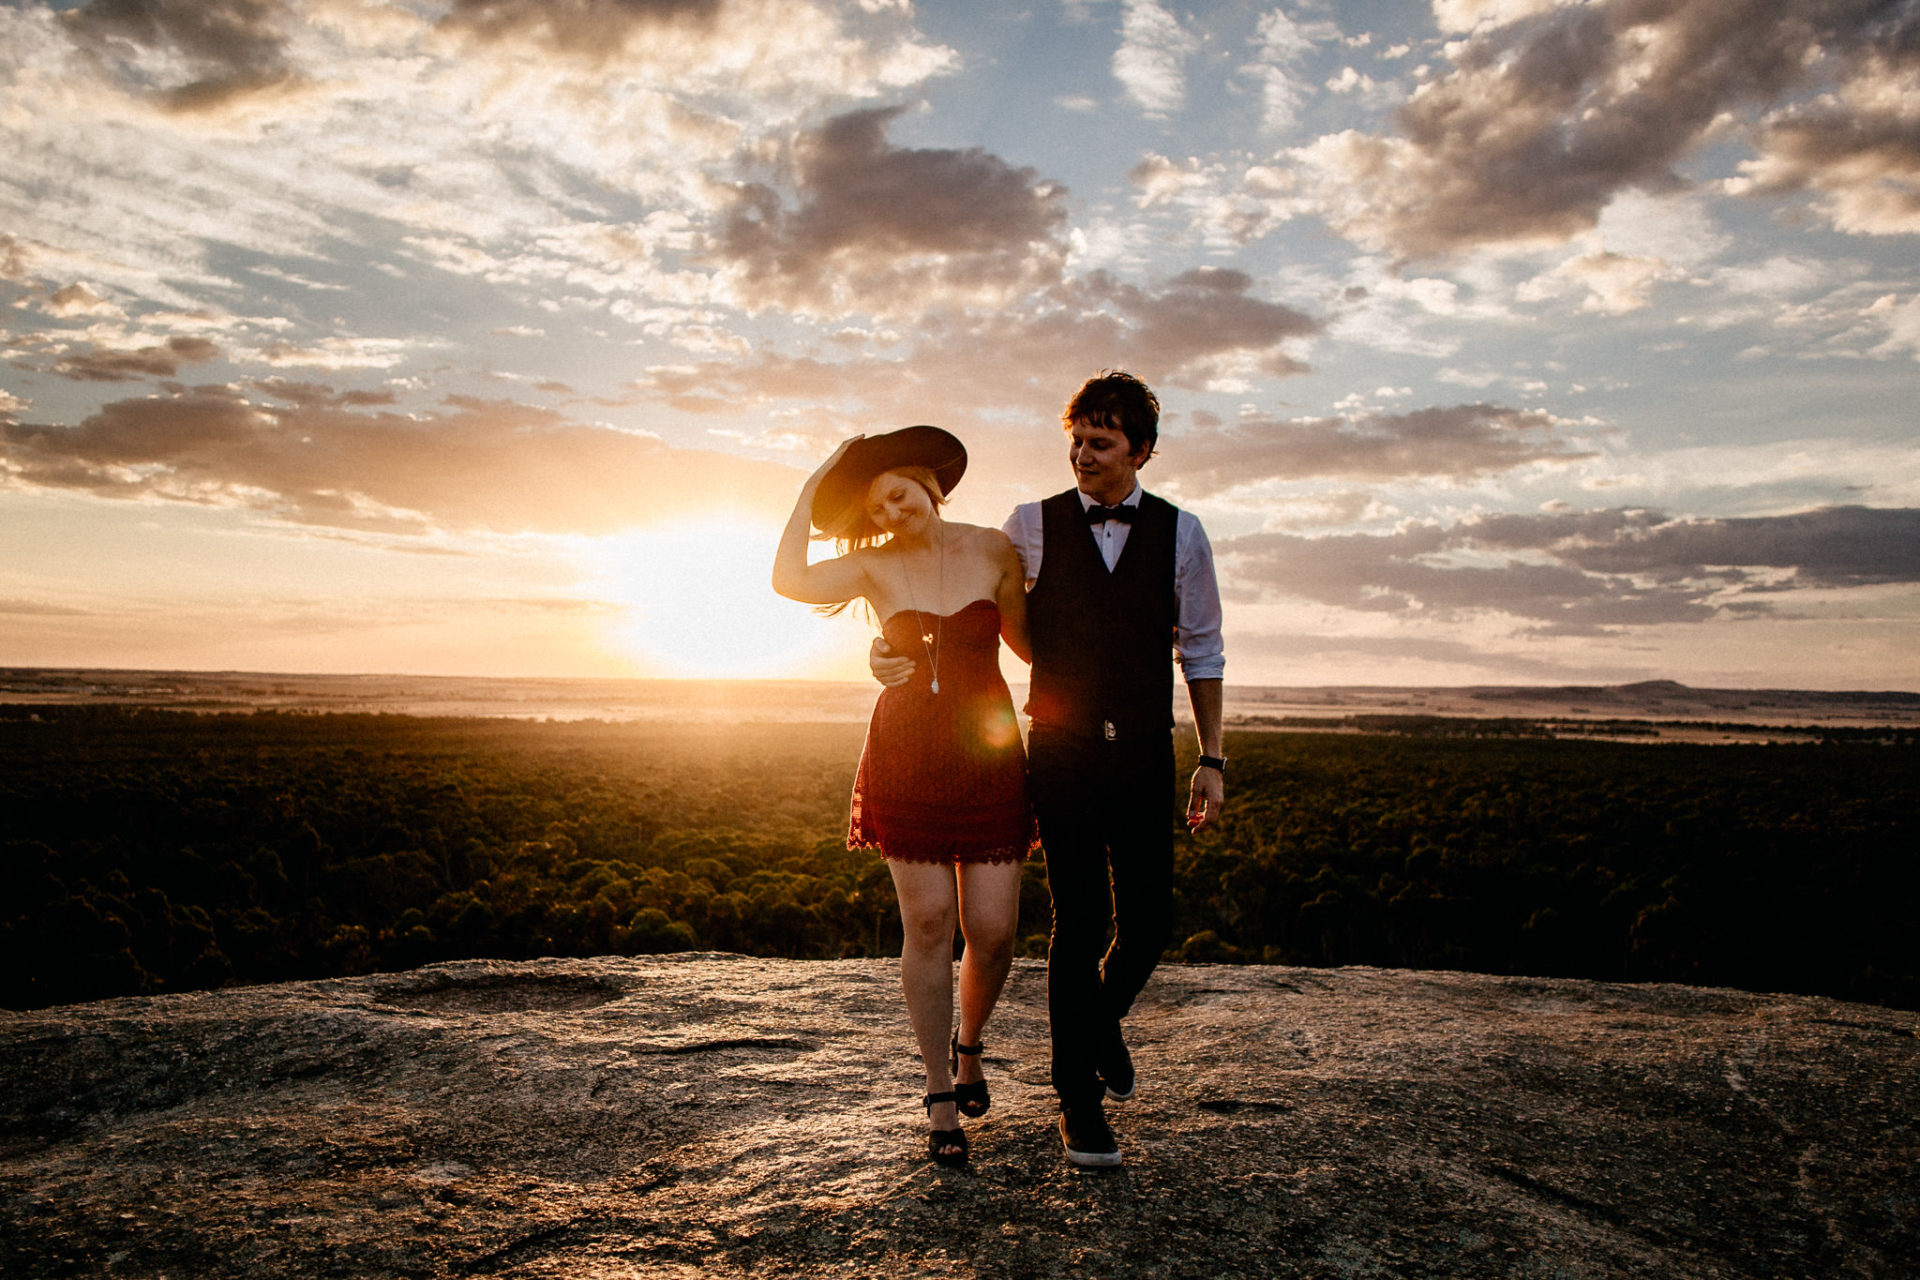 documentary wedding photographer melbourne-quirky geelong wedding-natural engagement photos-unposed portraits